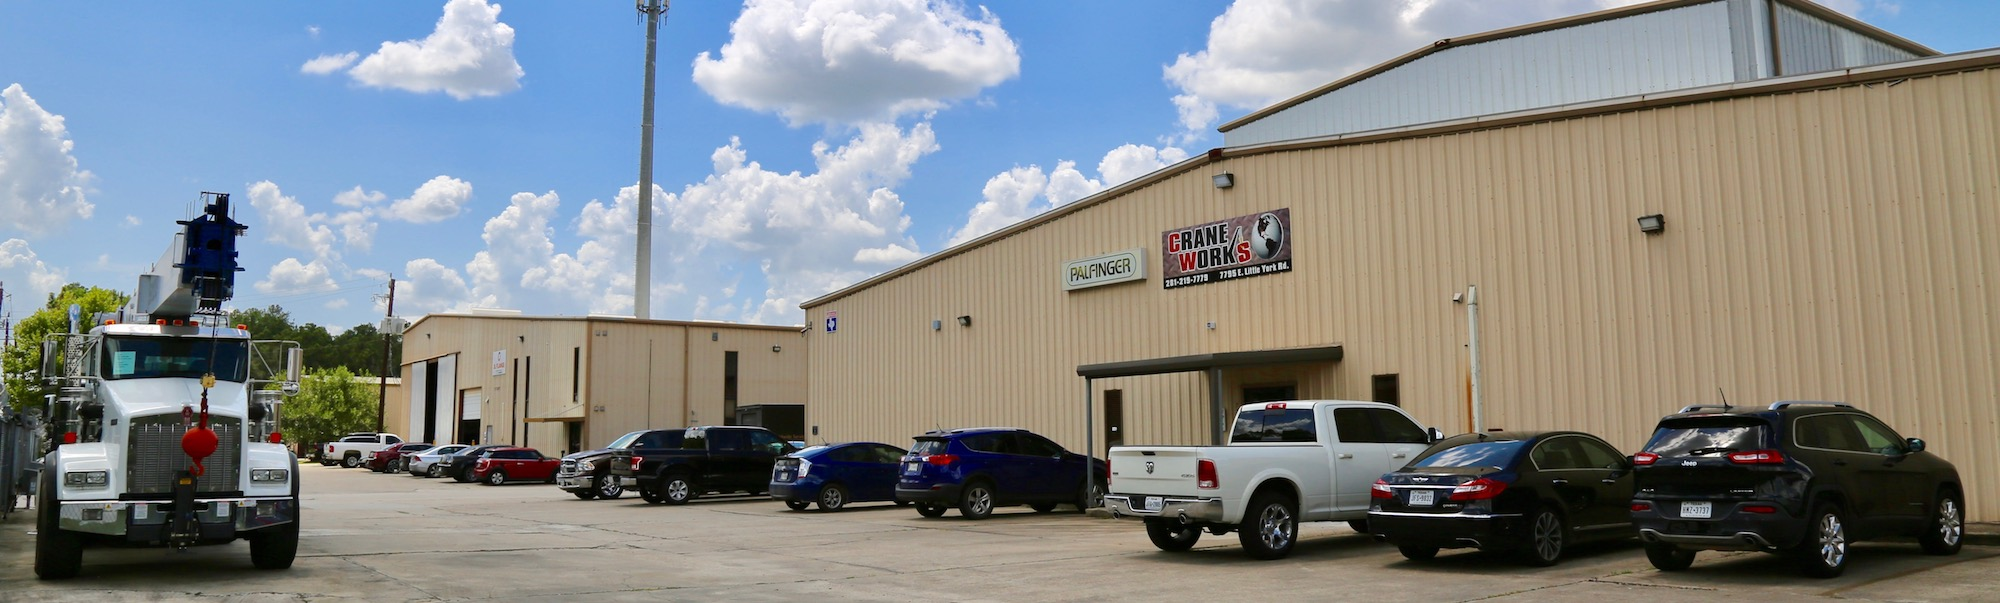 About Our Company | CraneWorks, Inc